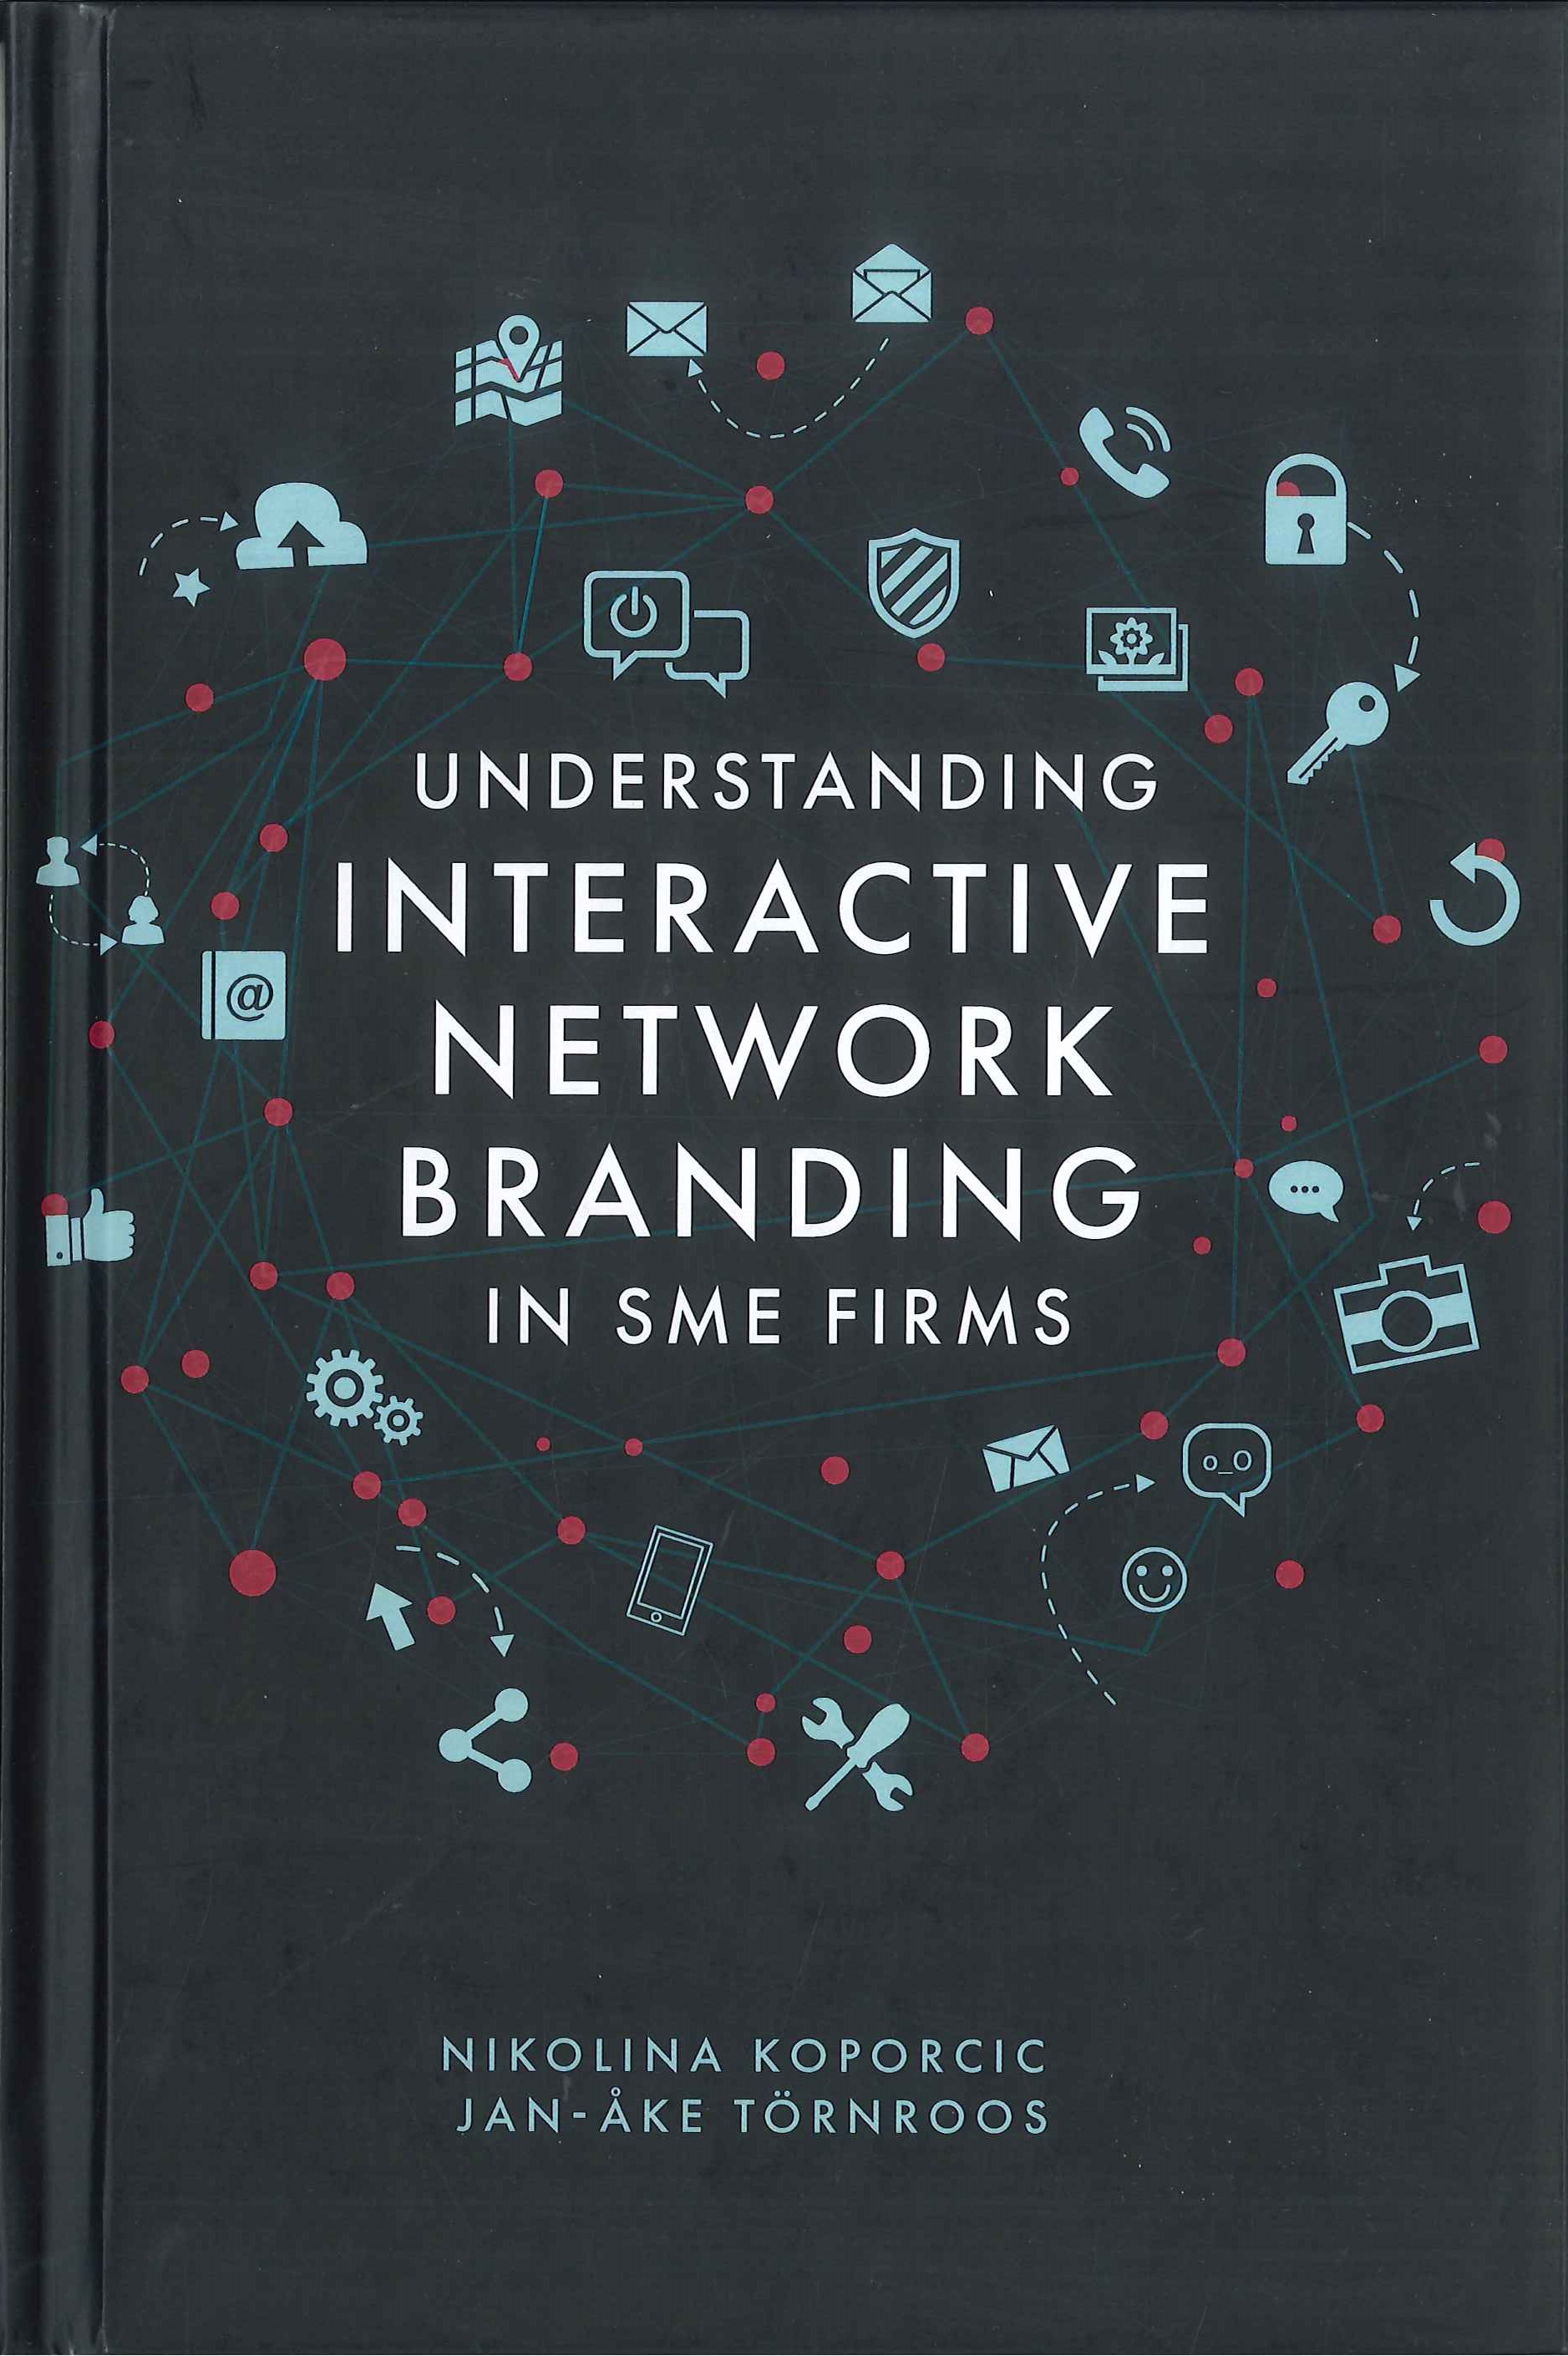 Understanding interactive network branding in SME firms